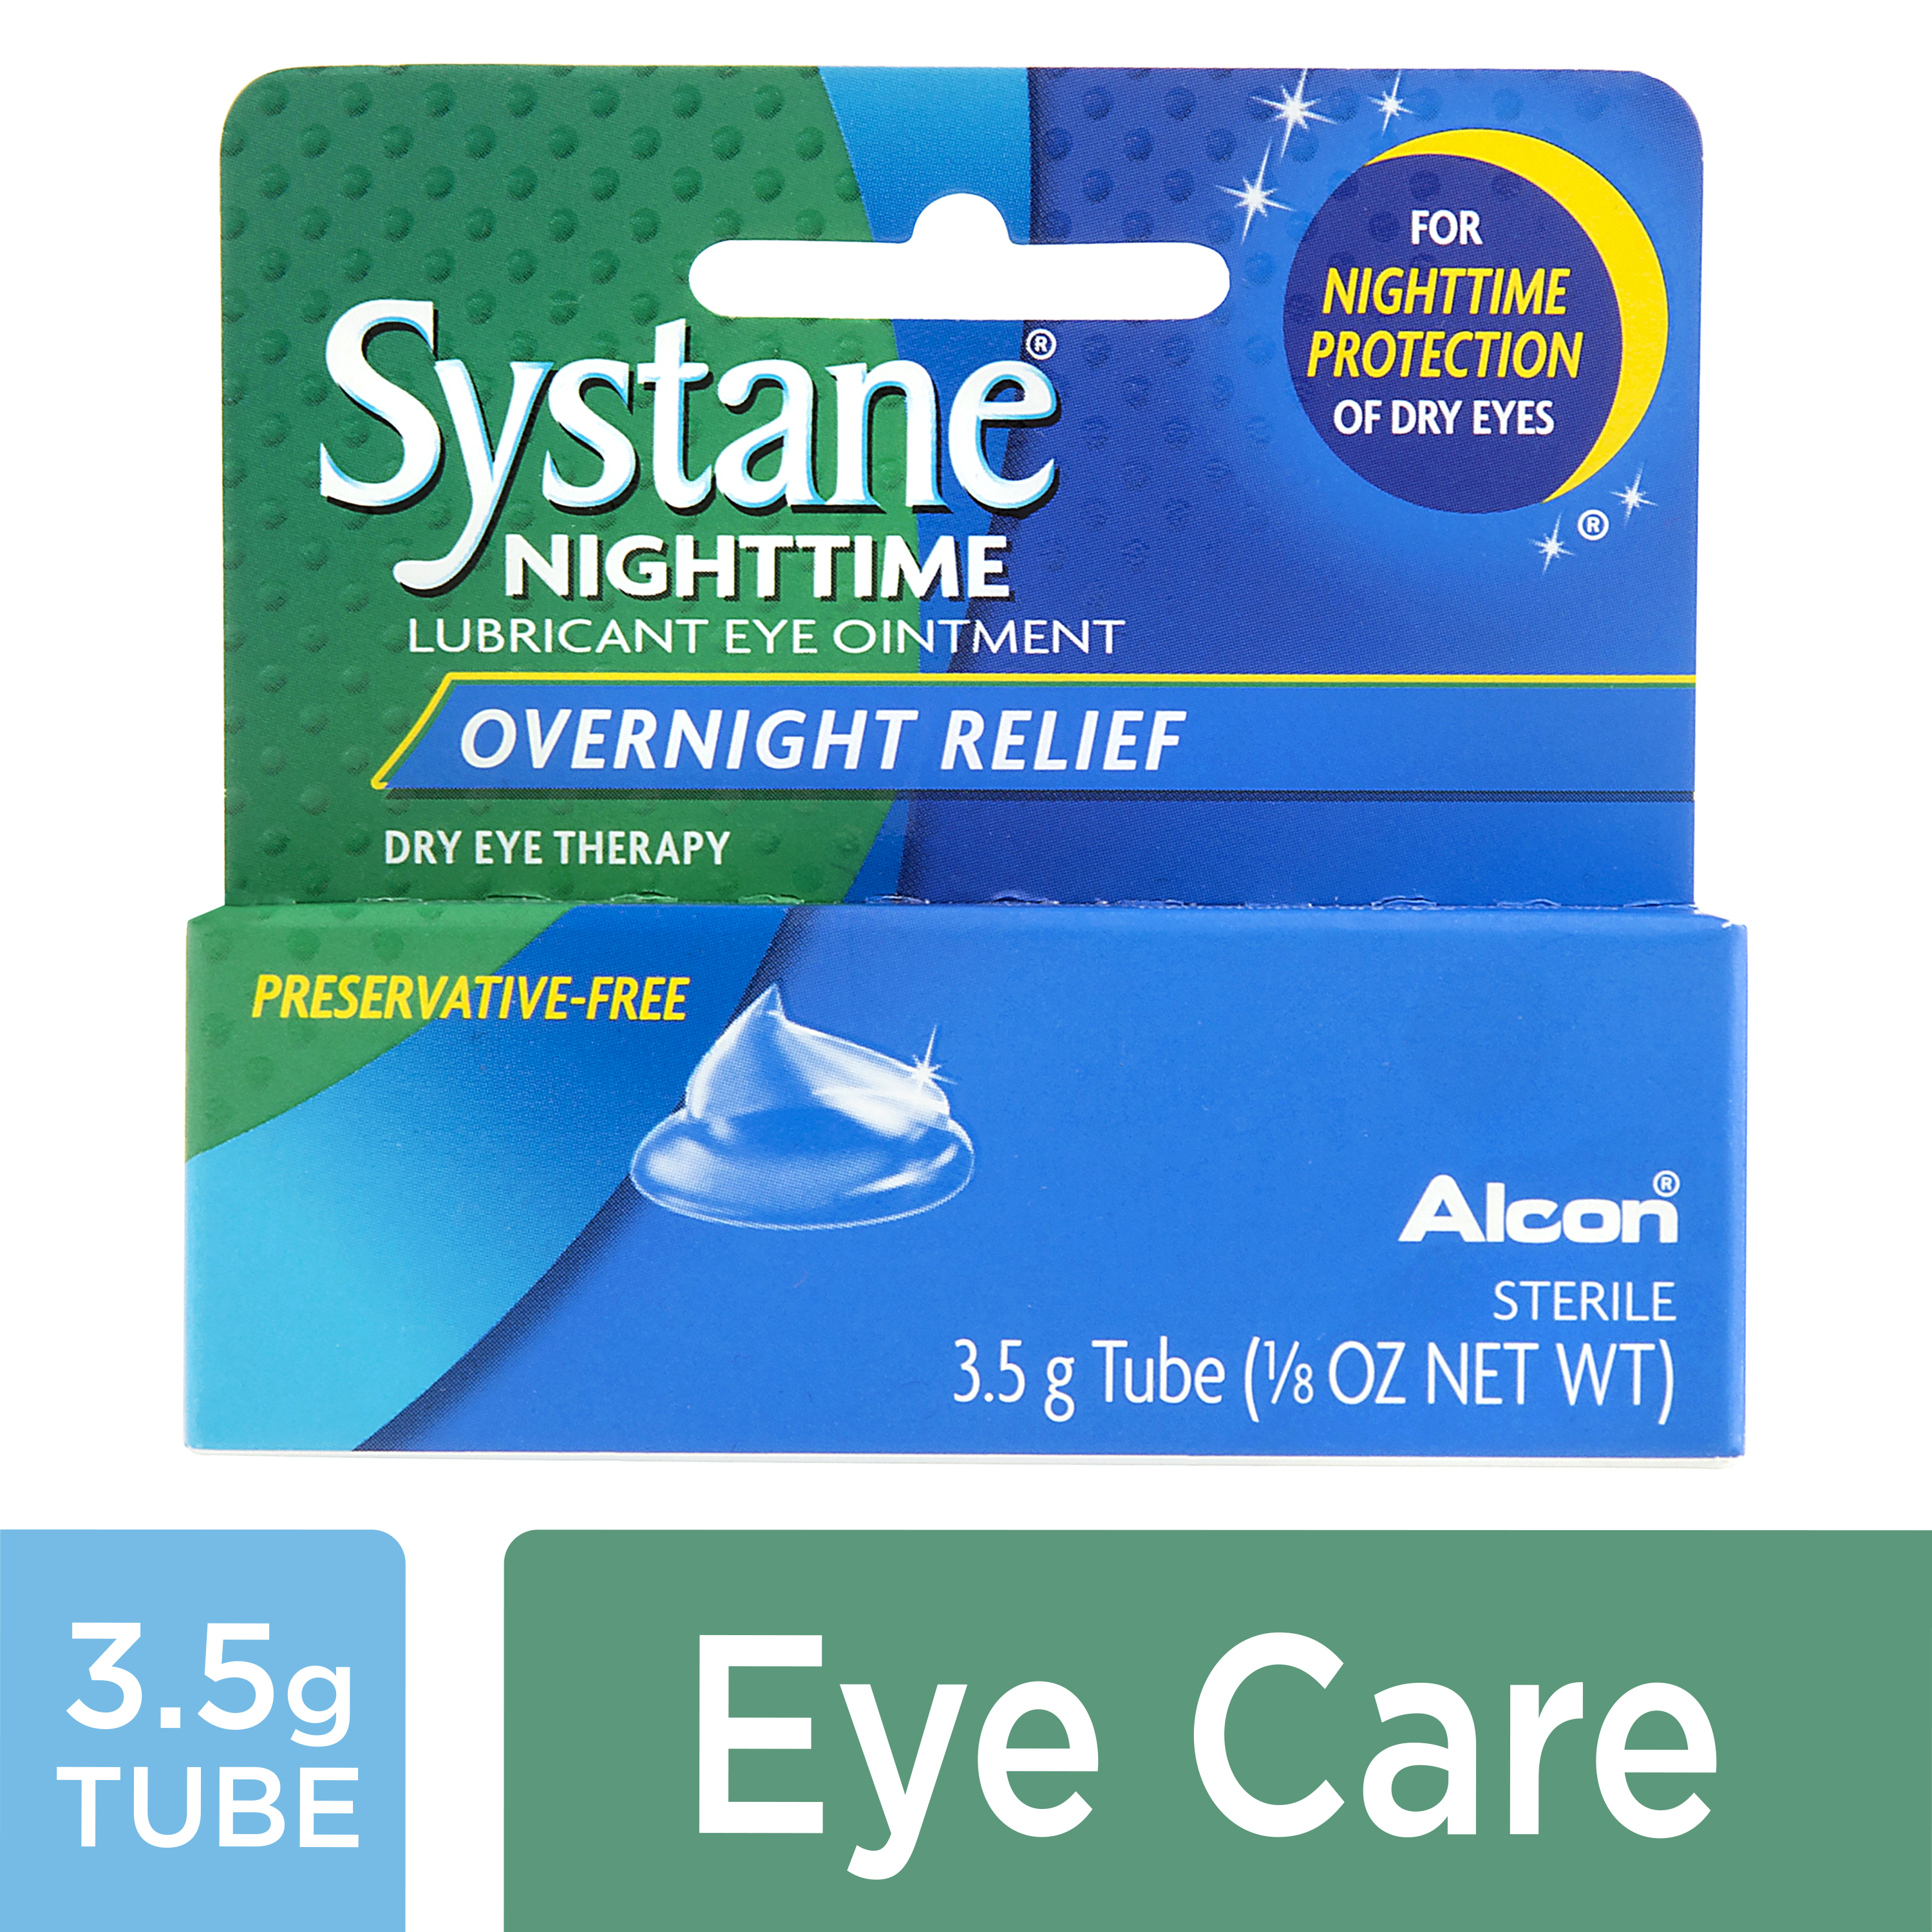 SYSTANE Lubricant Eye Ointment, Nighttime dry eye therapy, 3.5 g